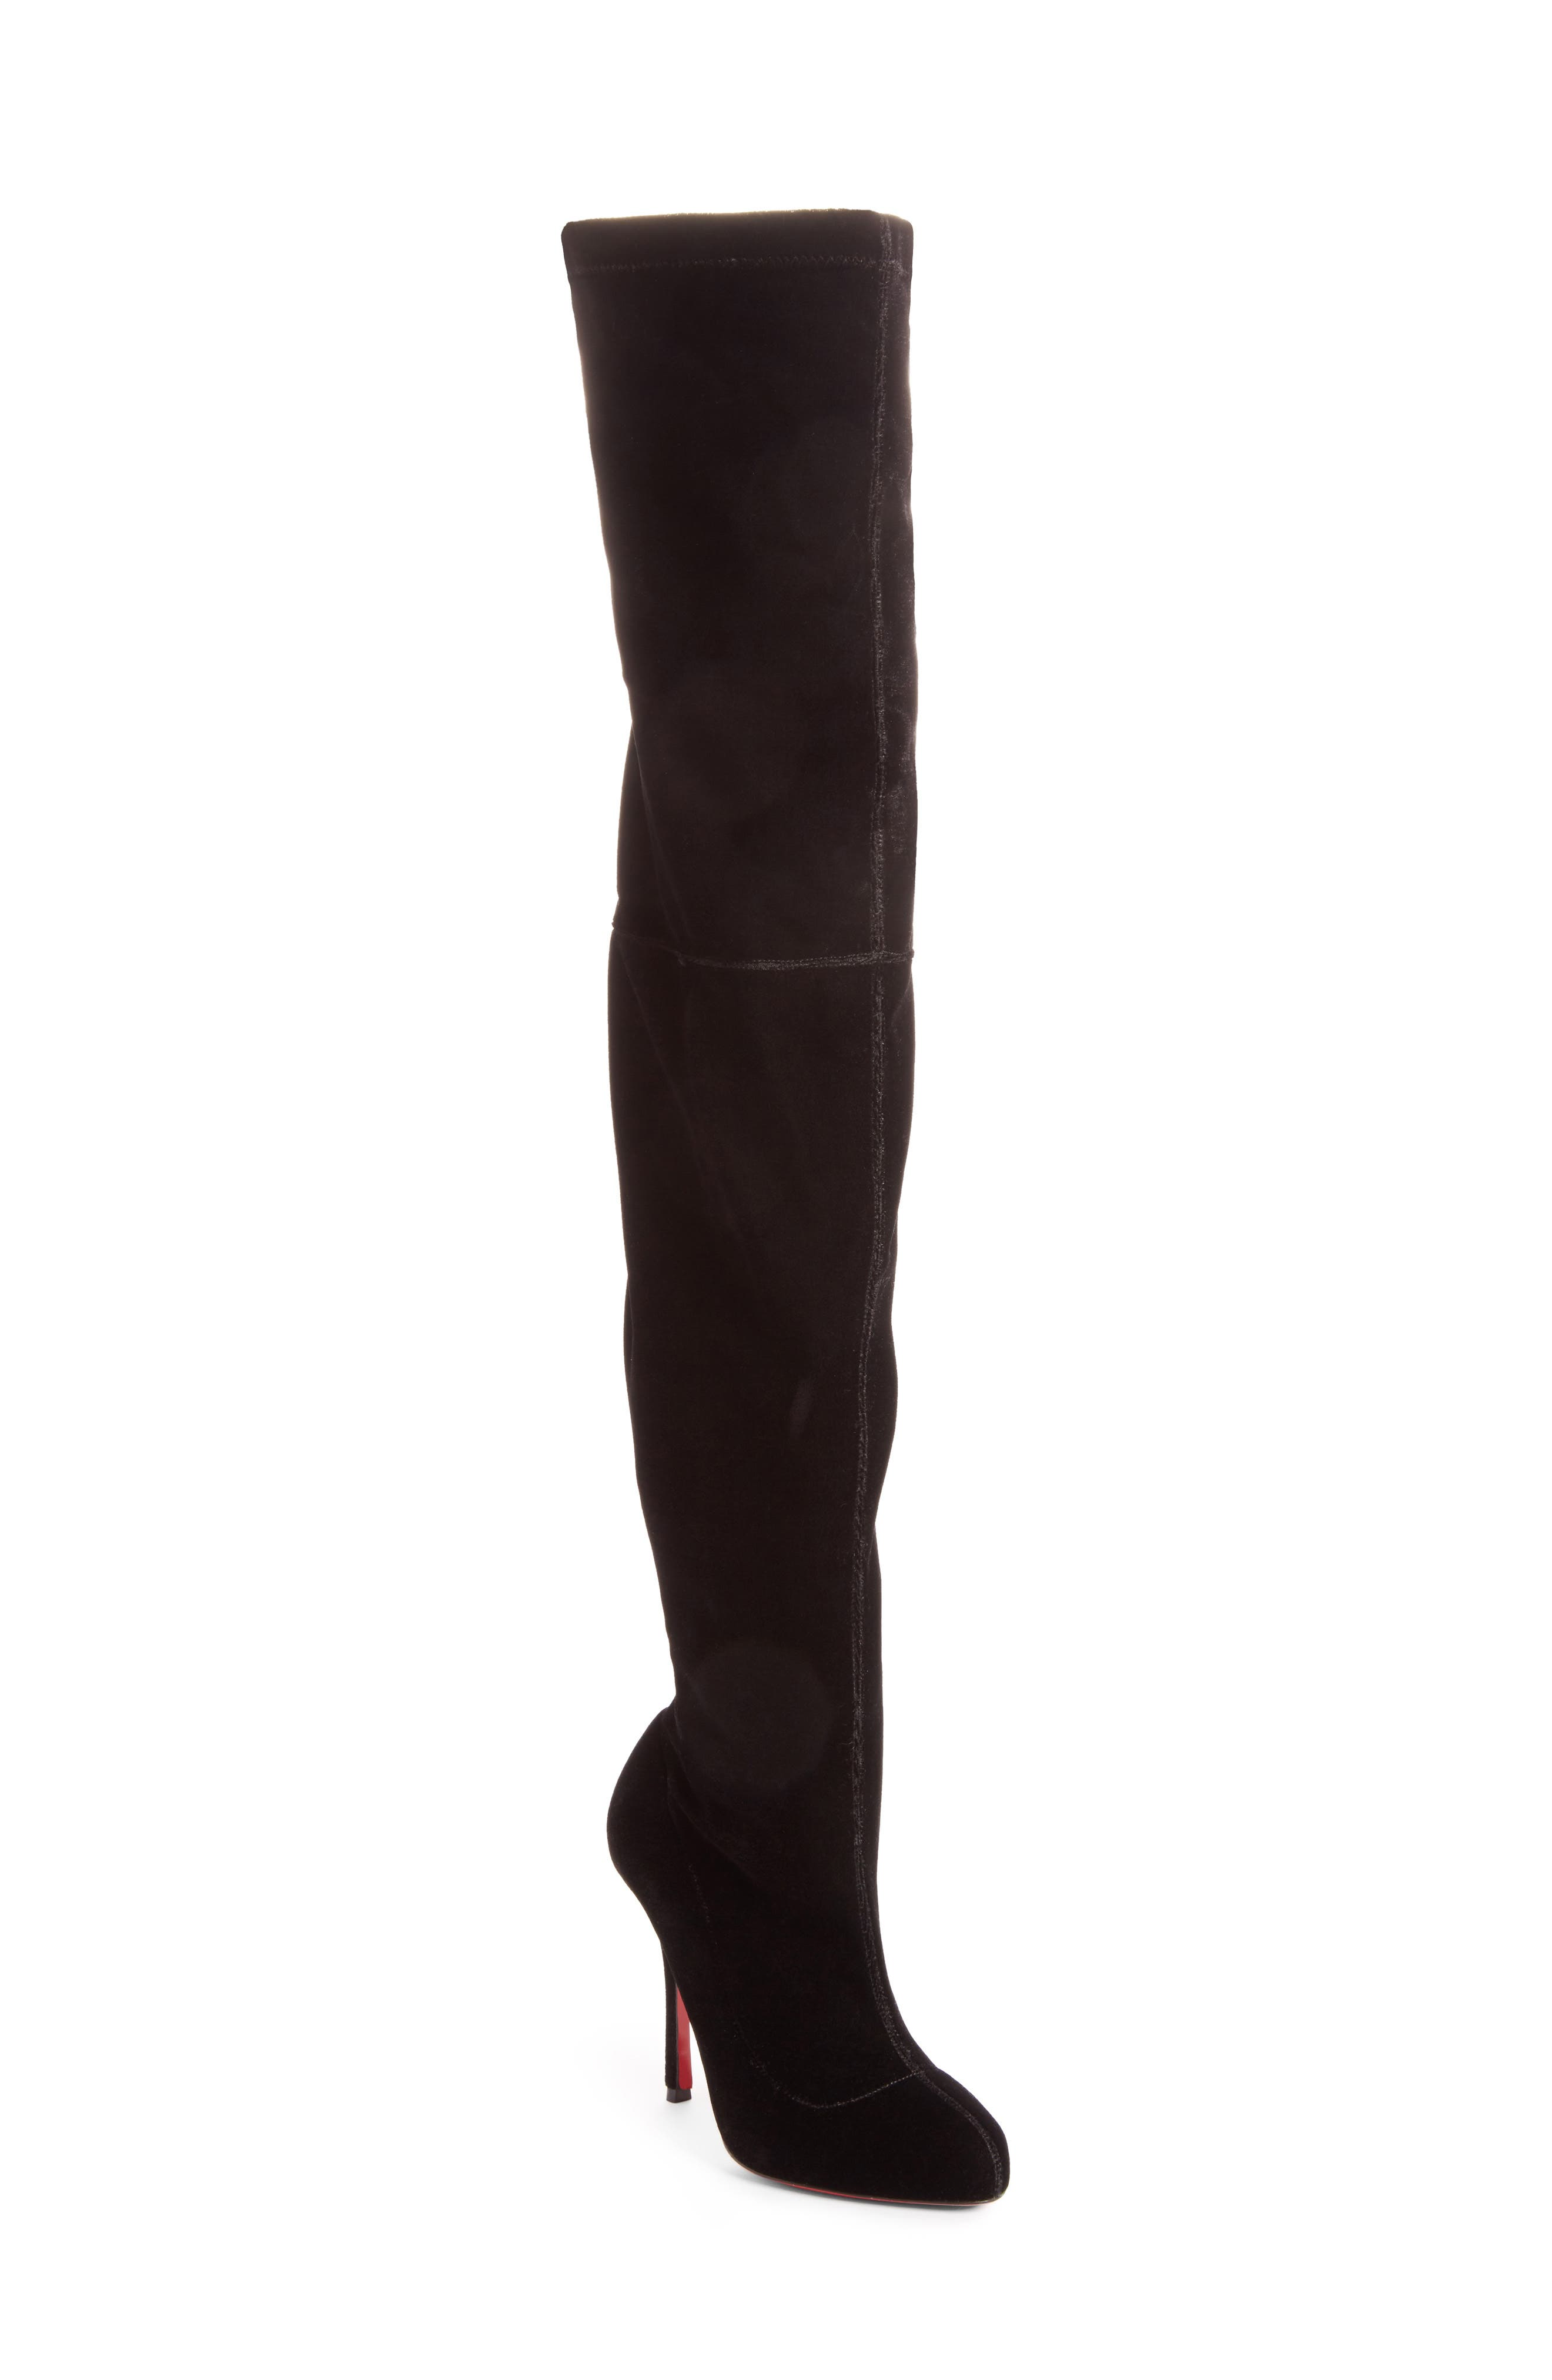 Classe Over the Knee Boot,                         Main,                         color,